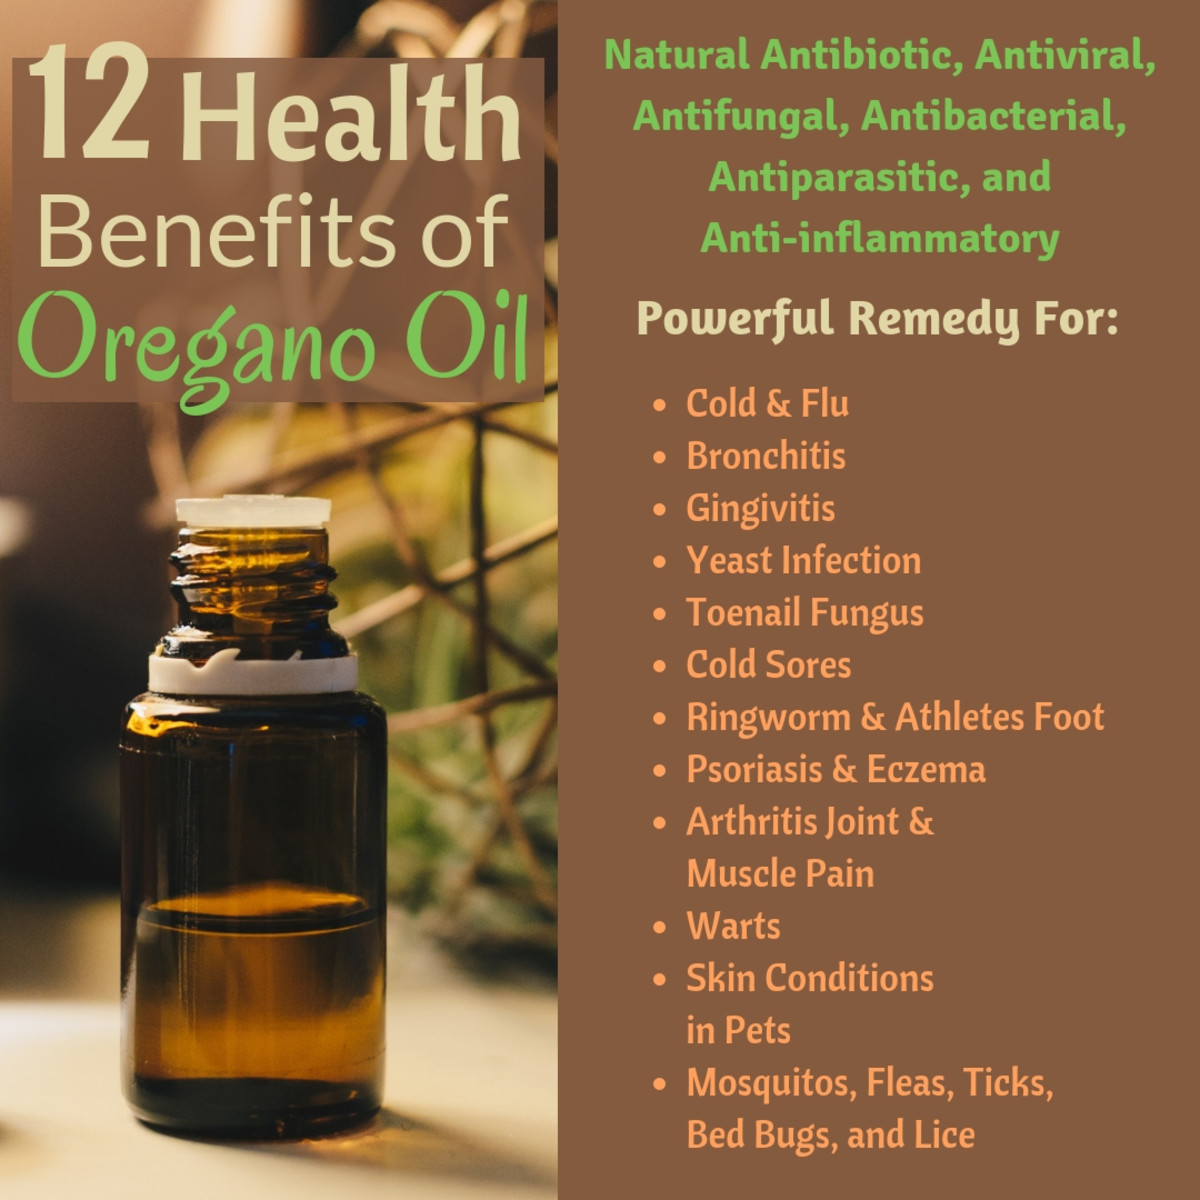 There are a surprising number of uses for Oregano Oil!